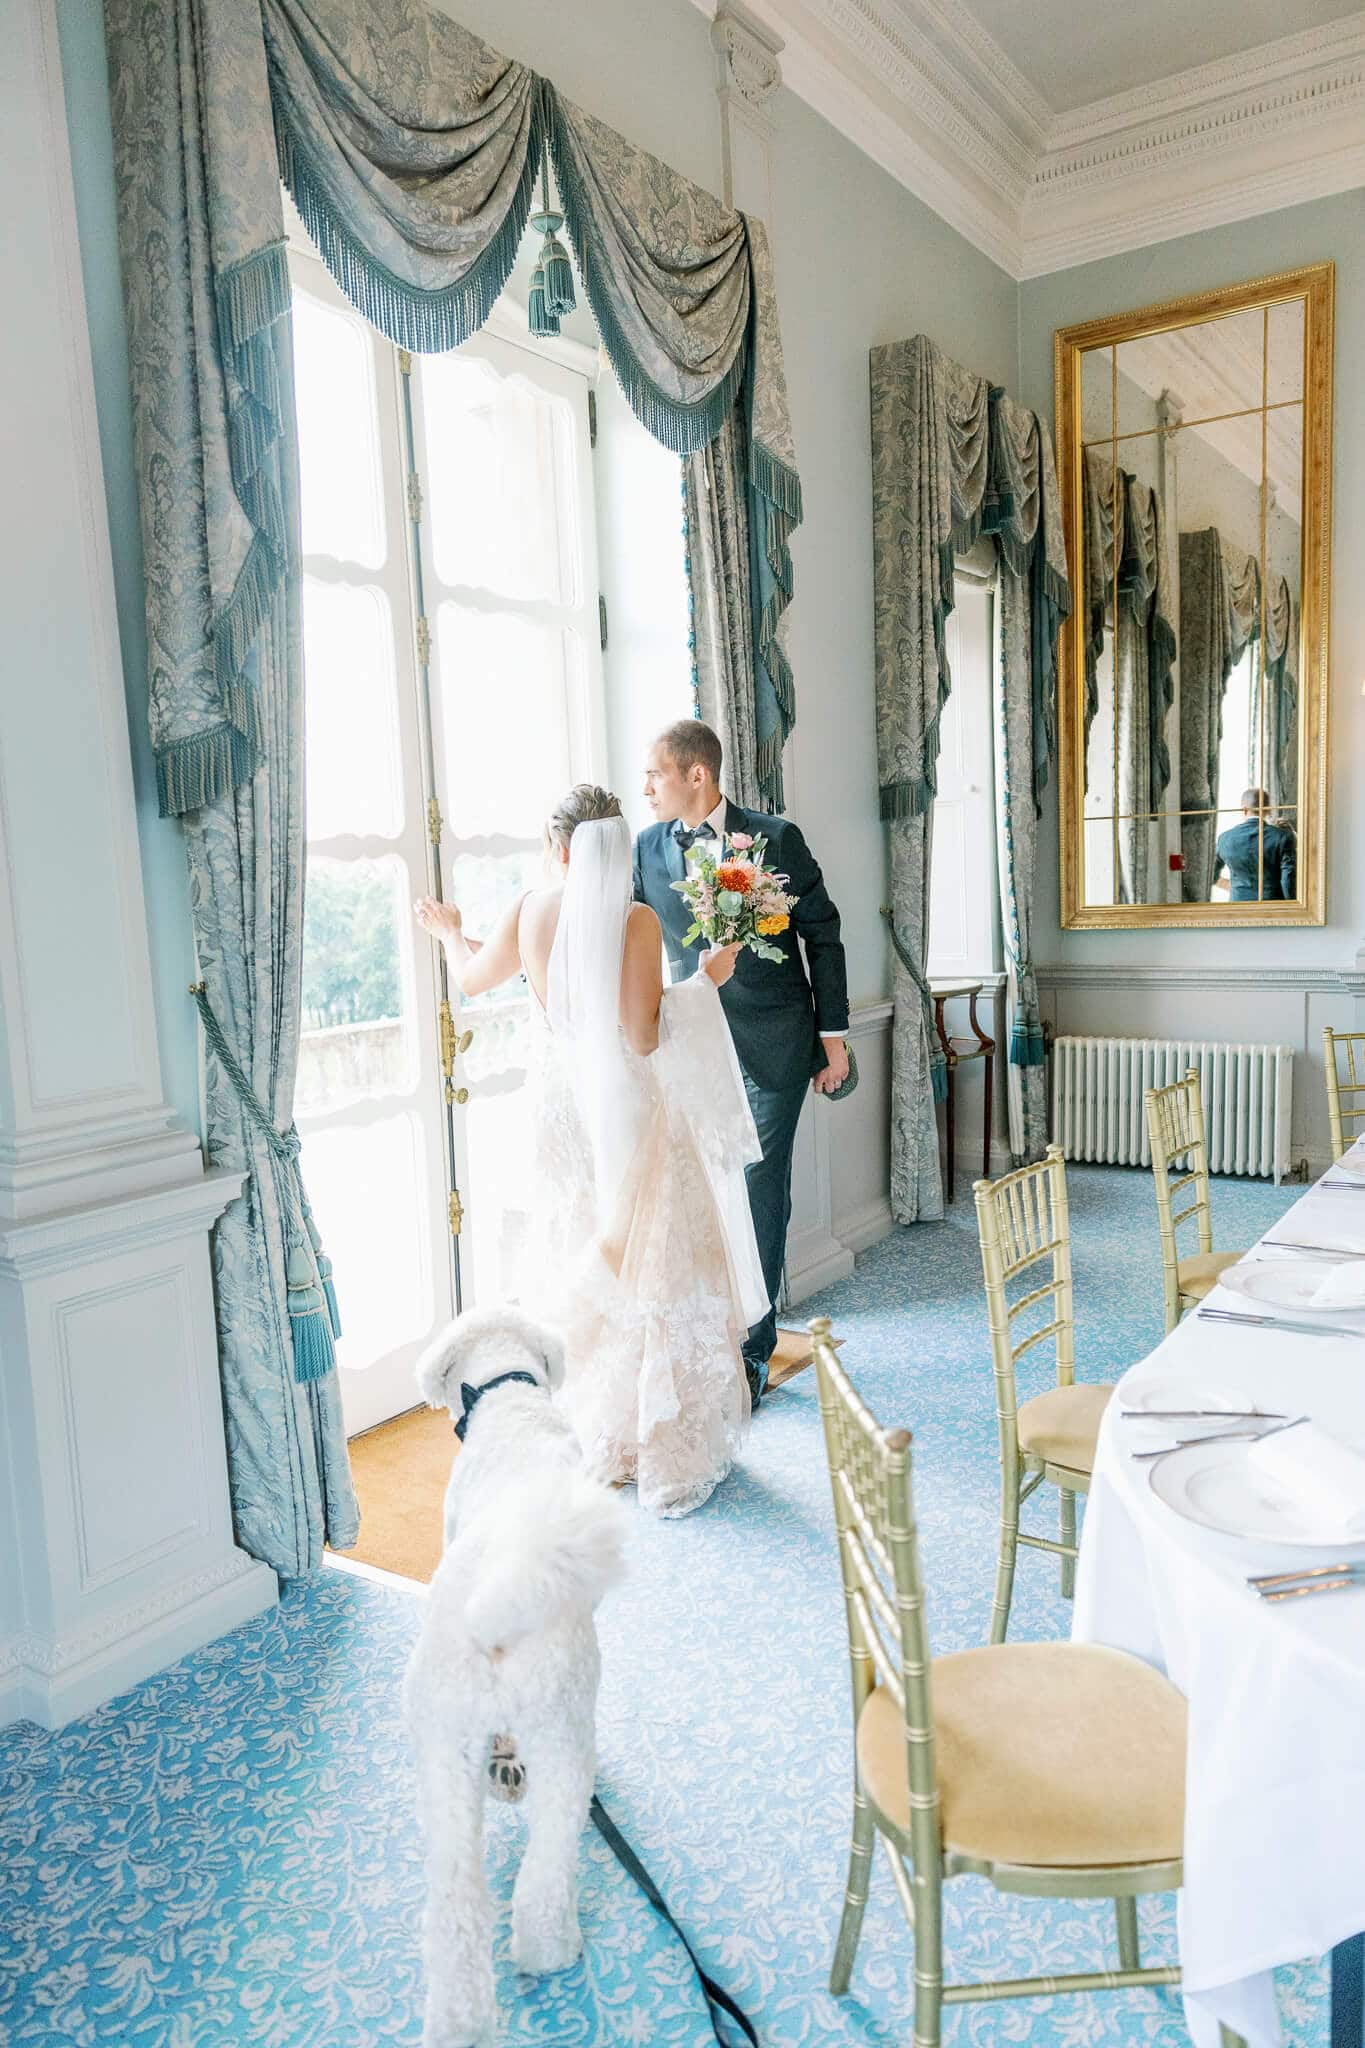 The boudoir room intimate weddings cliveden house